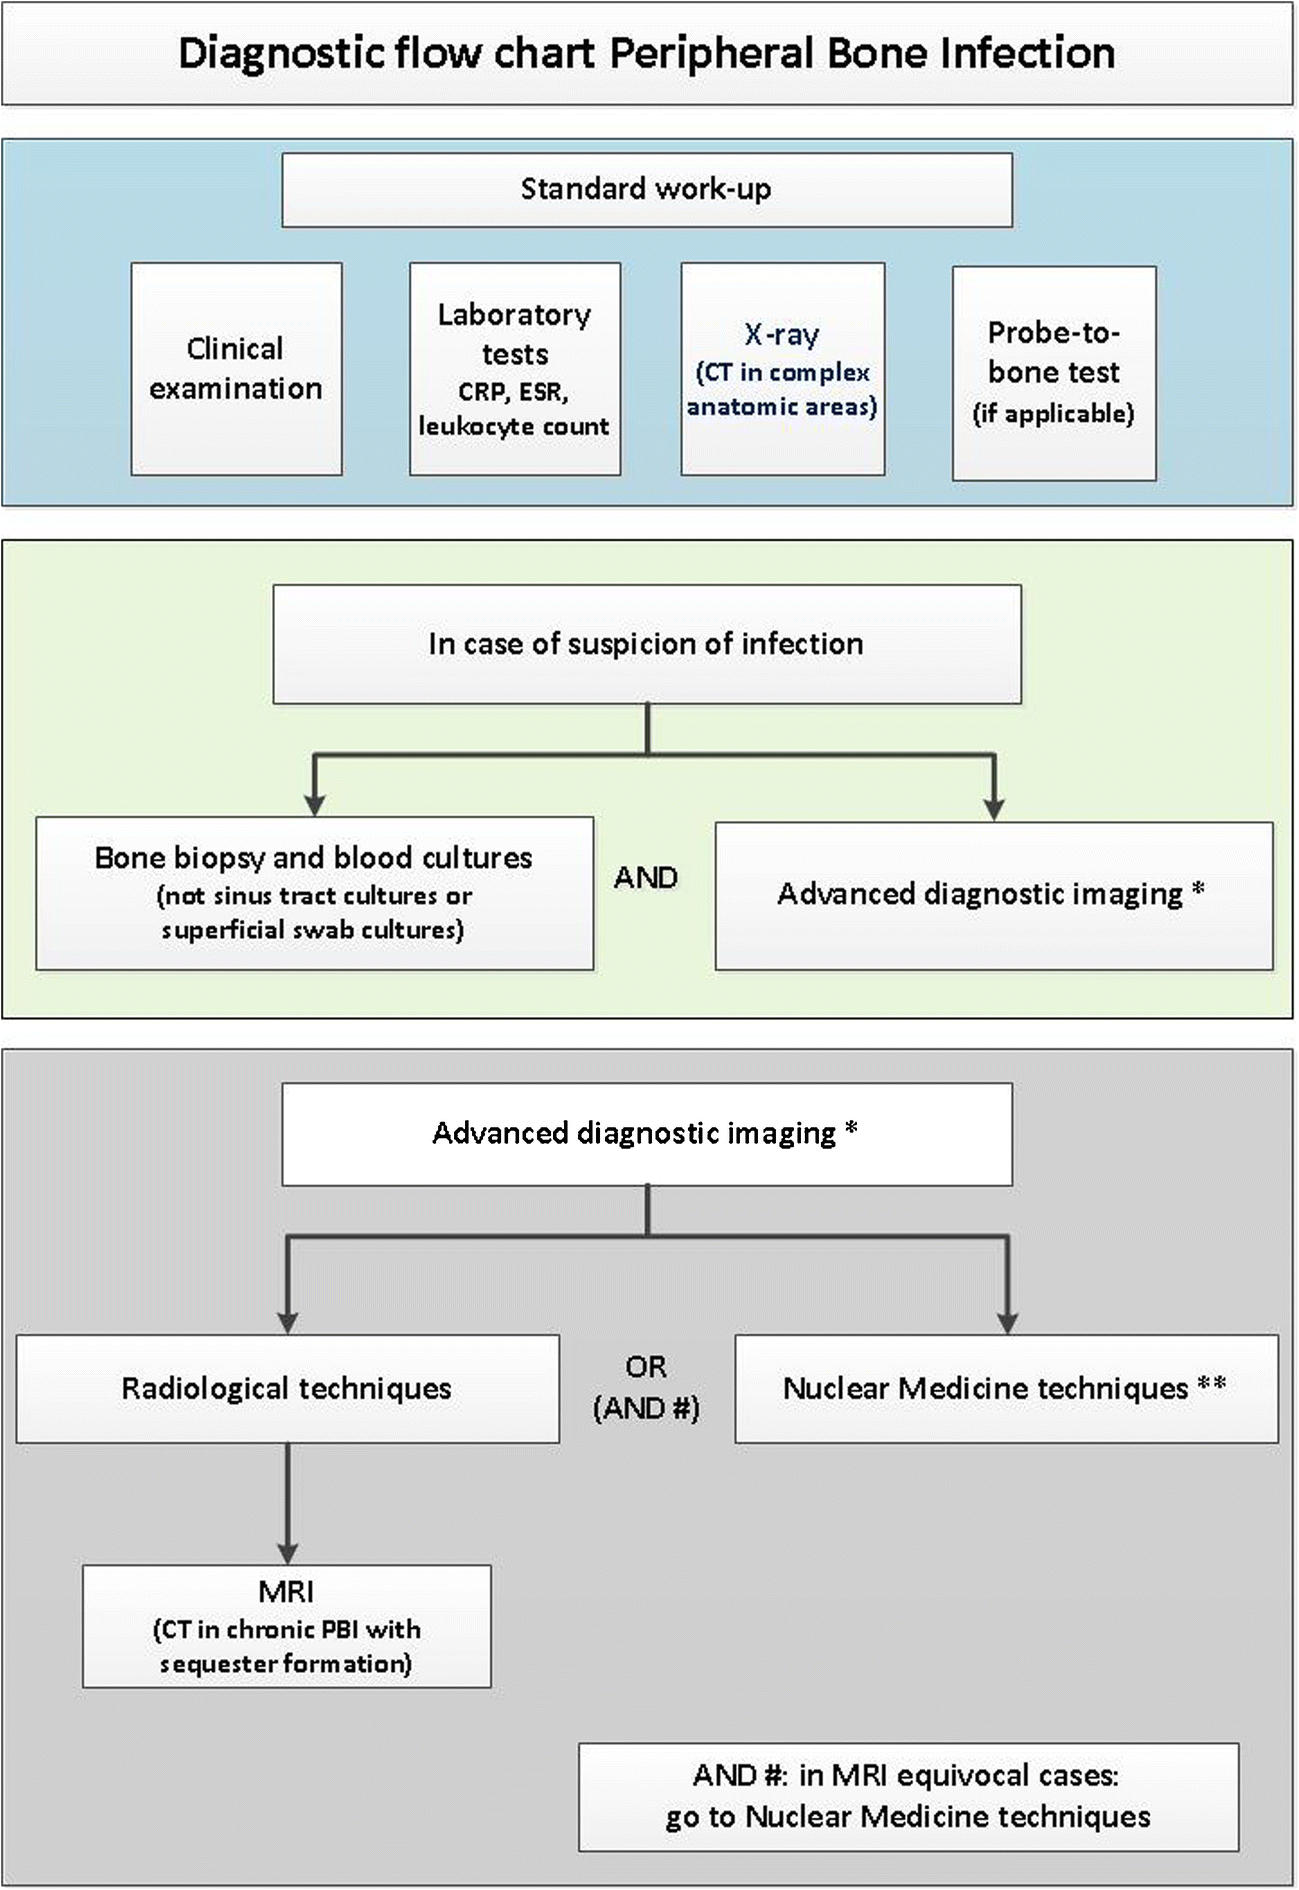 Consensus document for the diagnosis of peripheral bone